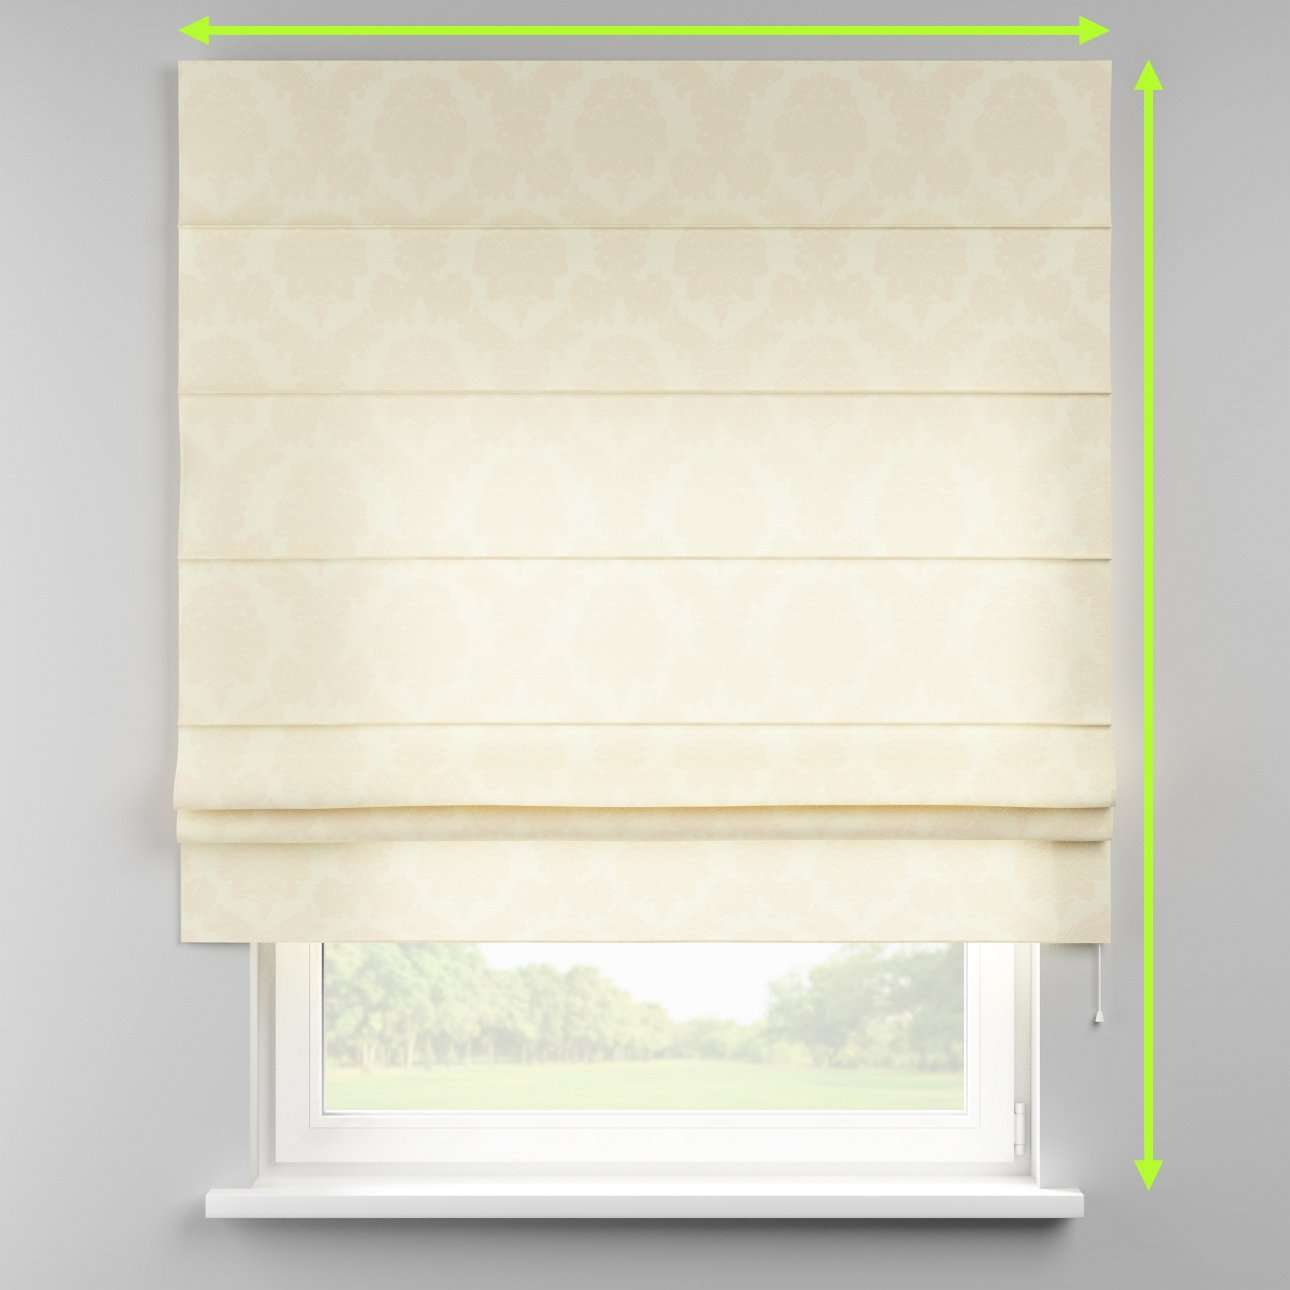 Padva roman blind  in collection Damasco, fabric: 613-01